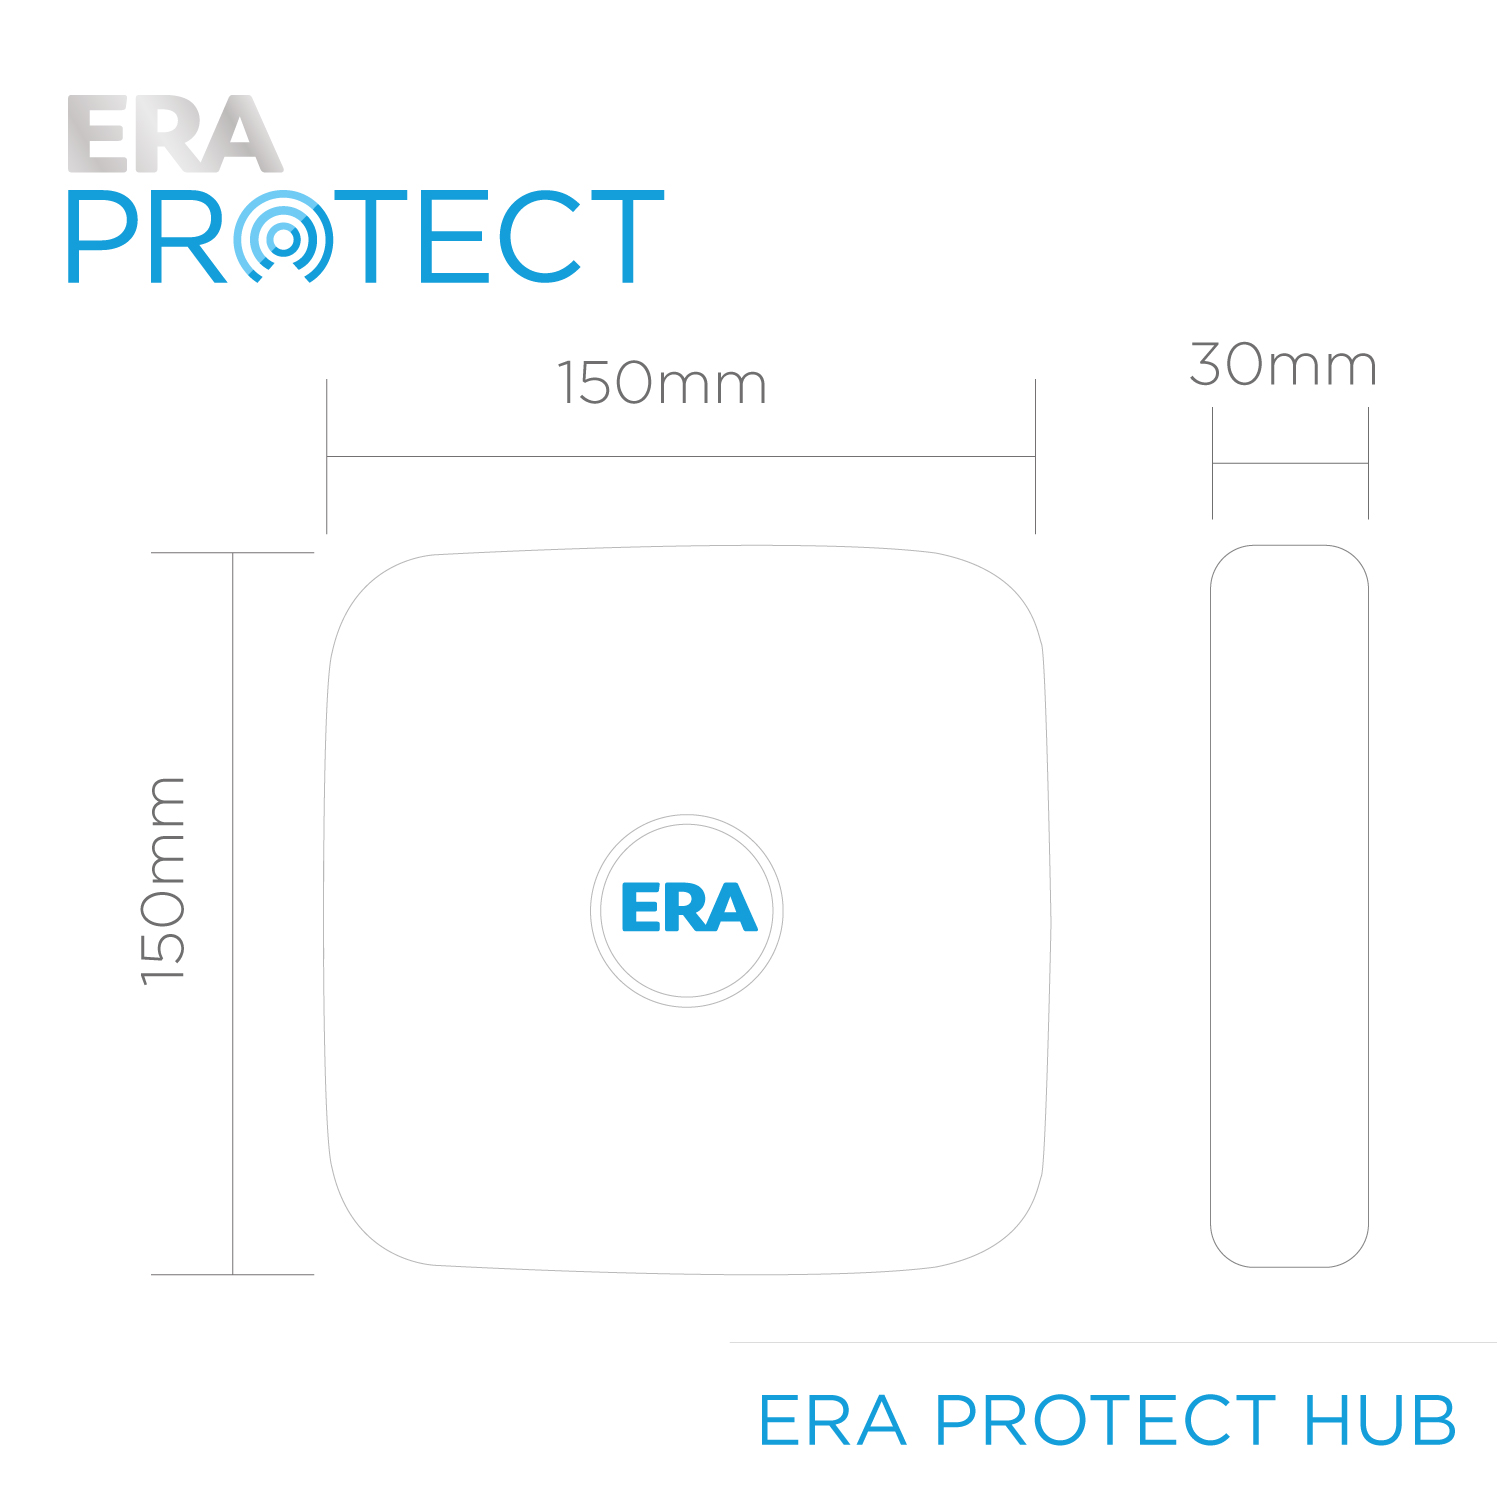 ERA Protect Hub Drawing